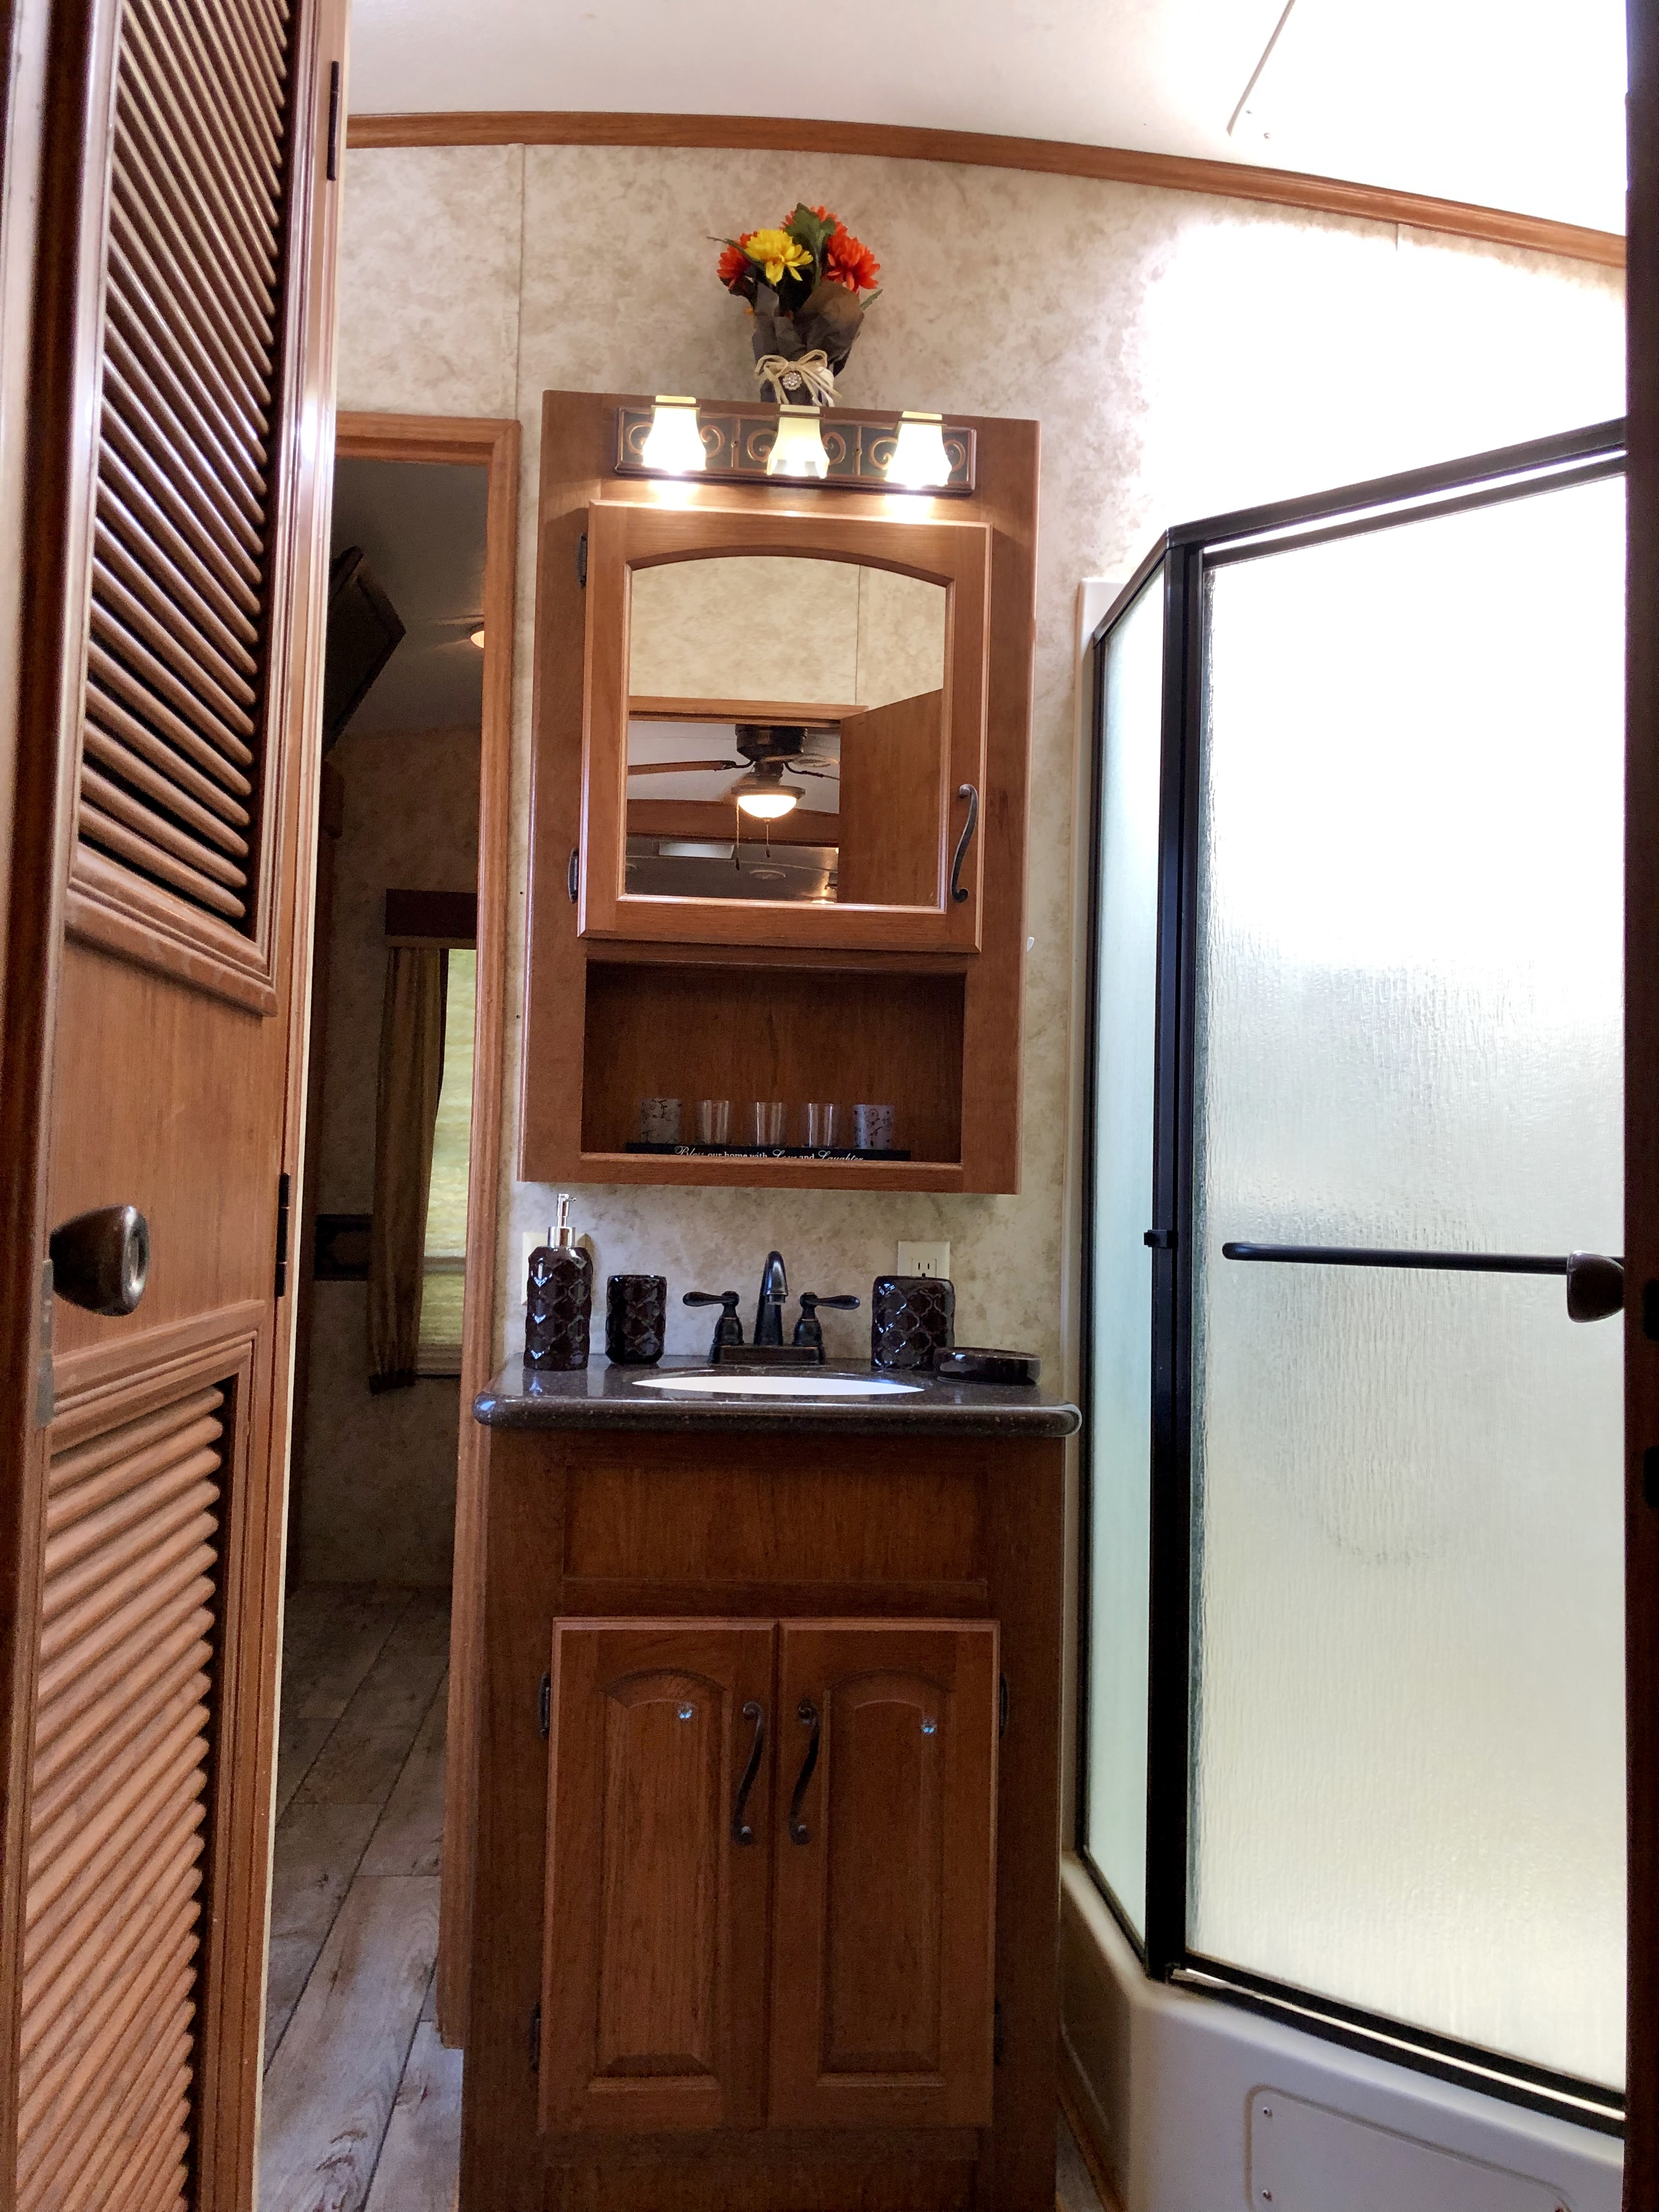 2011 Keystone Montana 5th Wheel 39ft 5 Slide Out Fifth Wheel